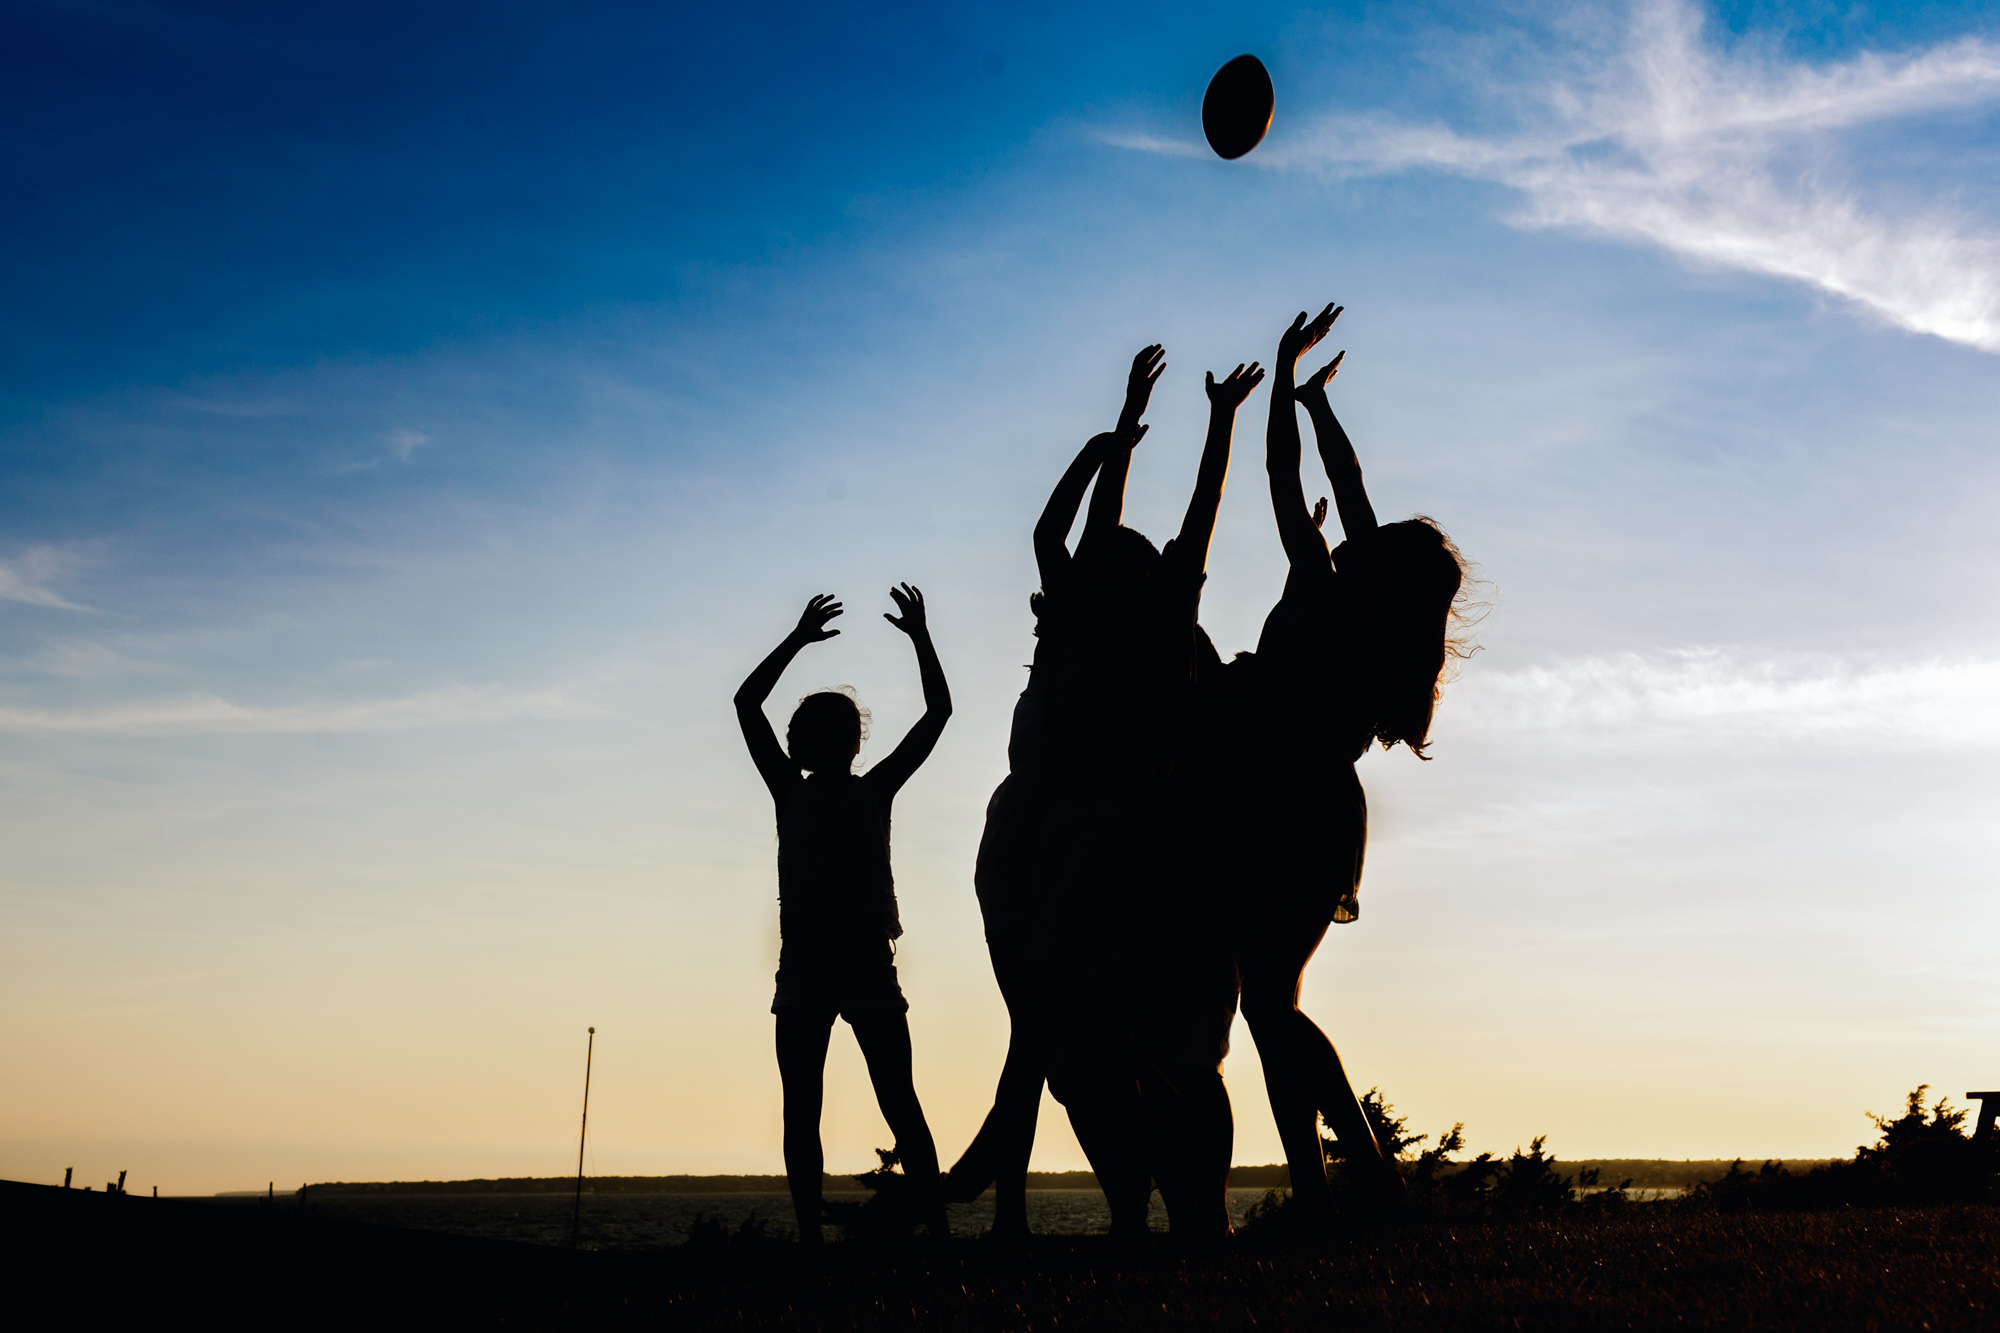 silhouette of kids jumping for football